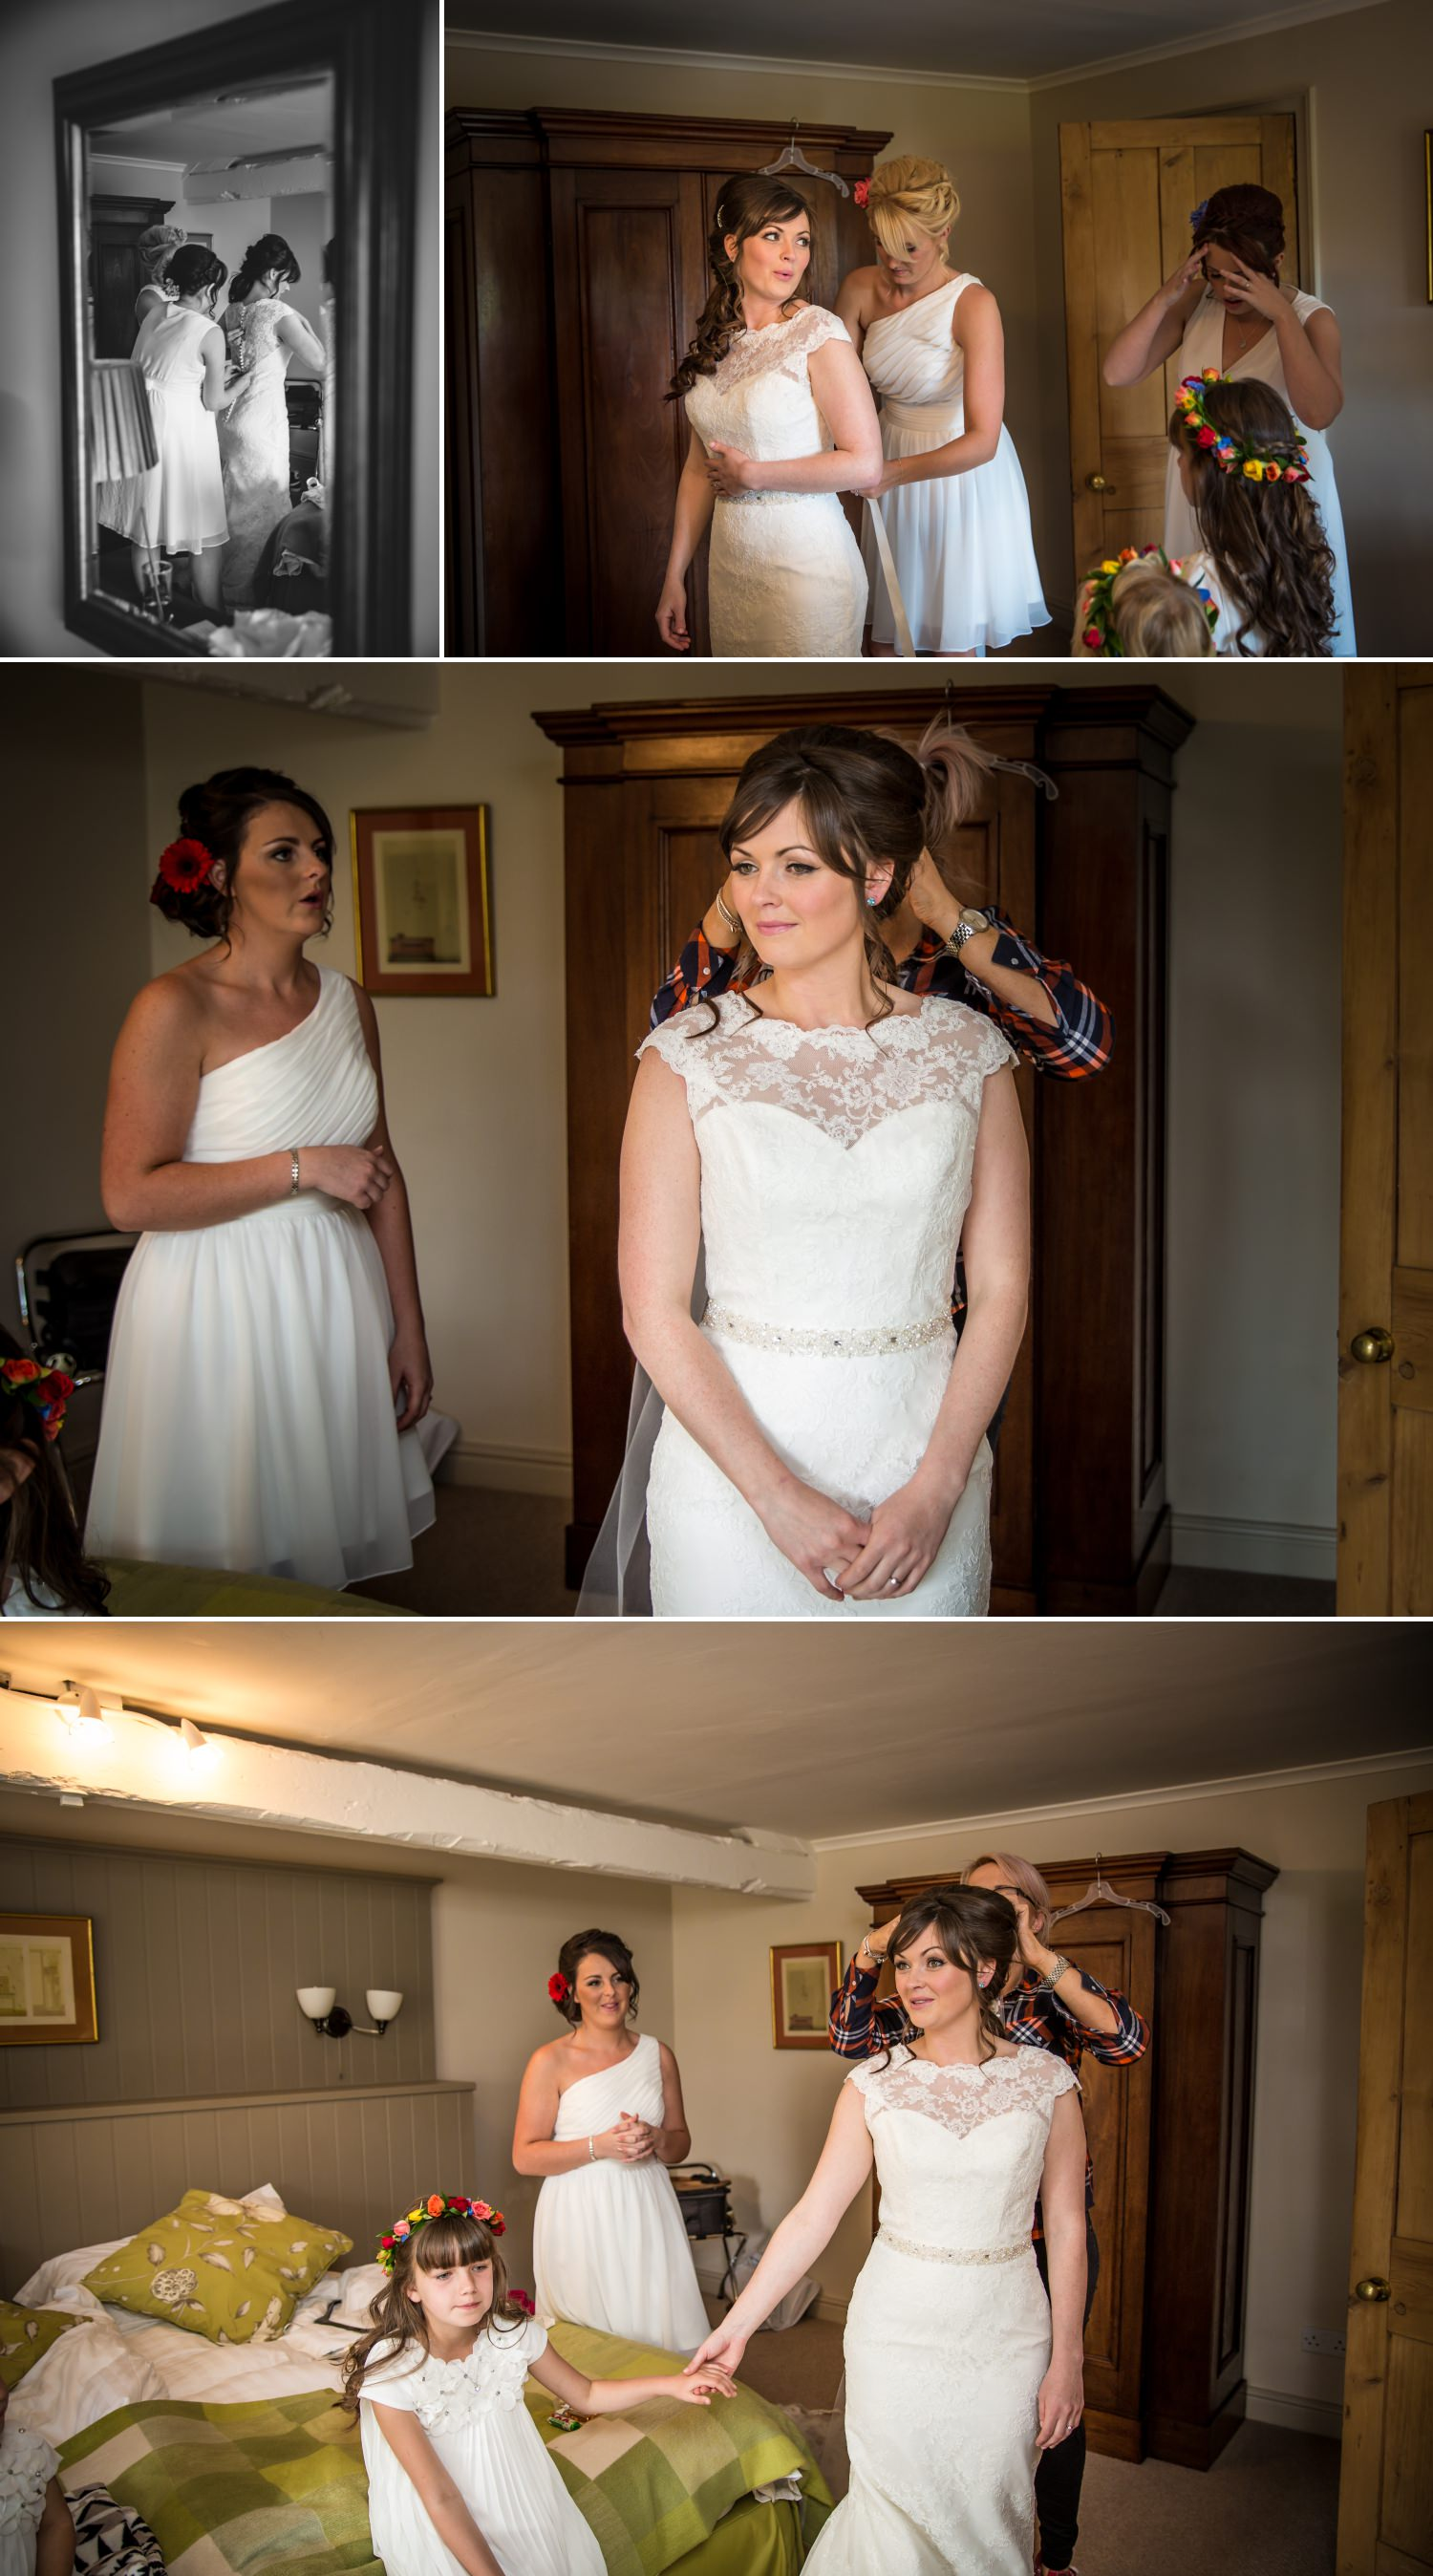 Wedding photography bride getting ready at Cheshire venue Combermere Abbey